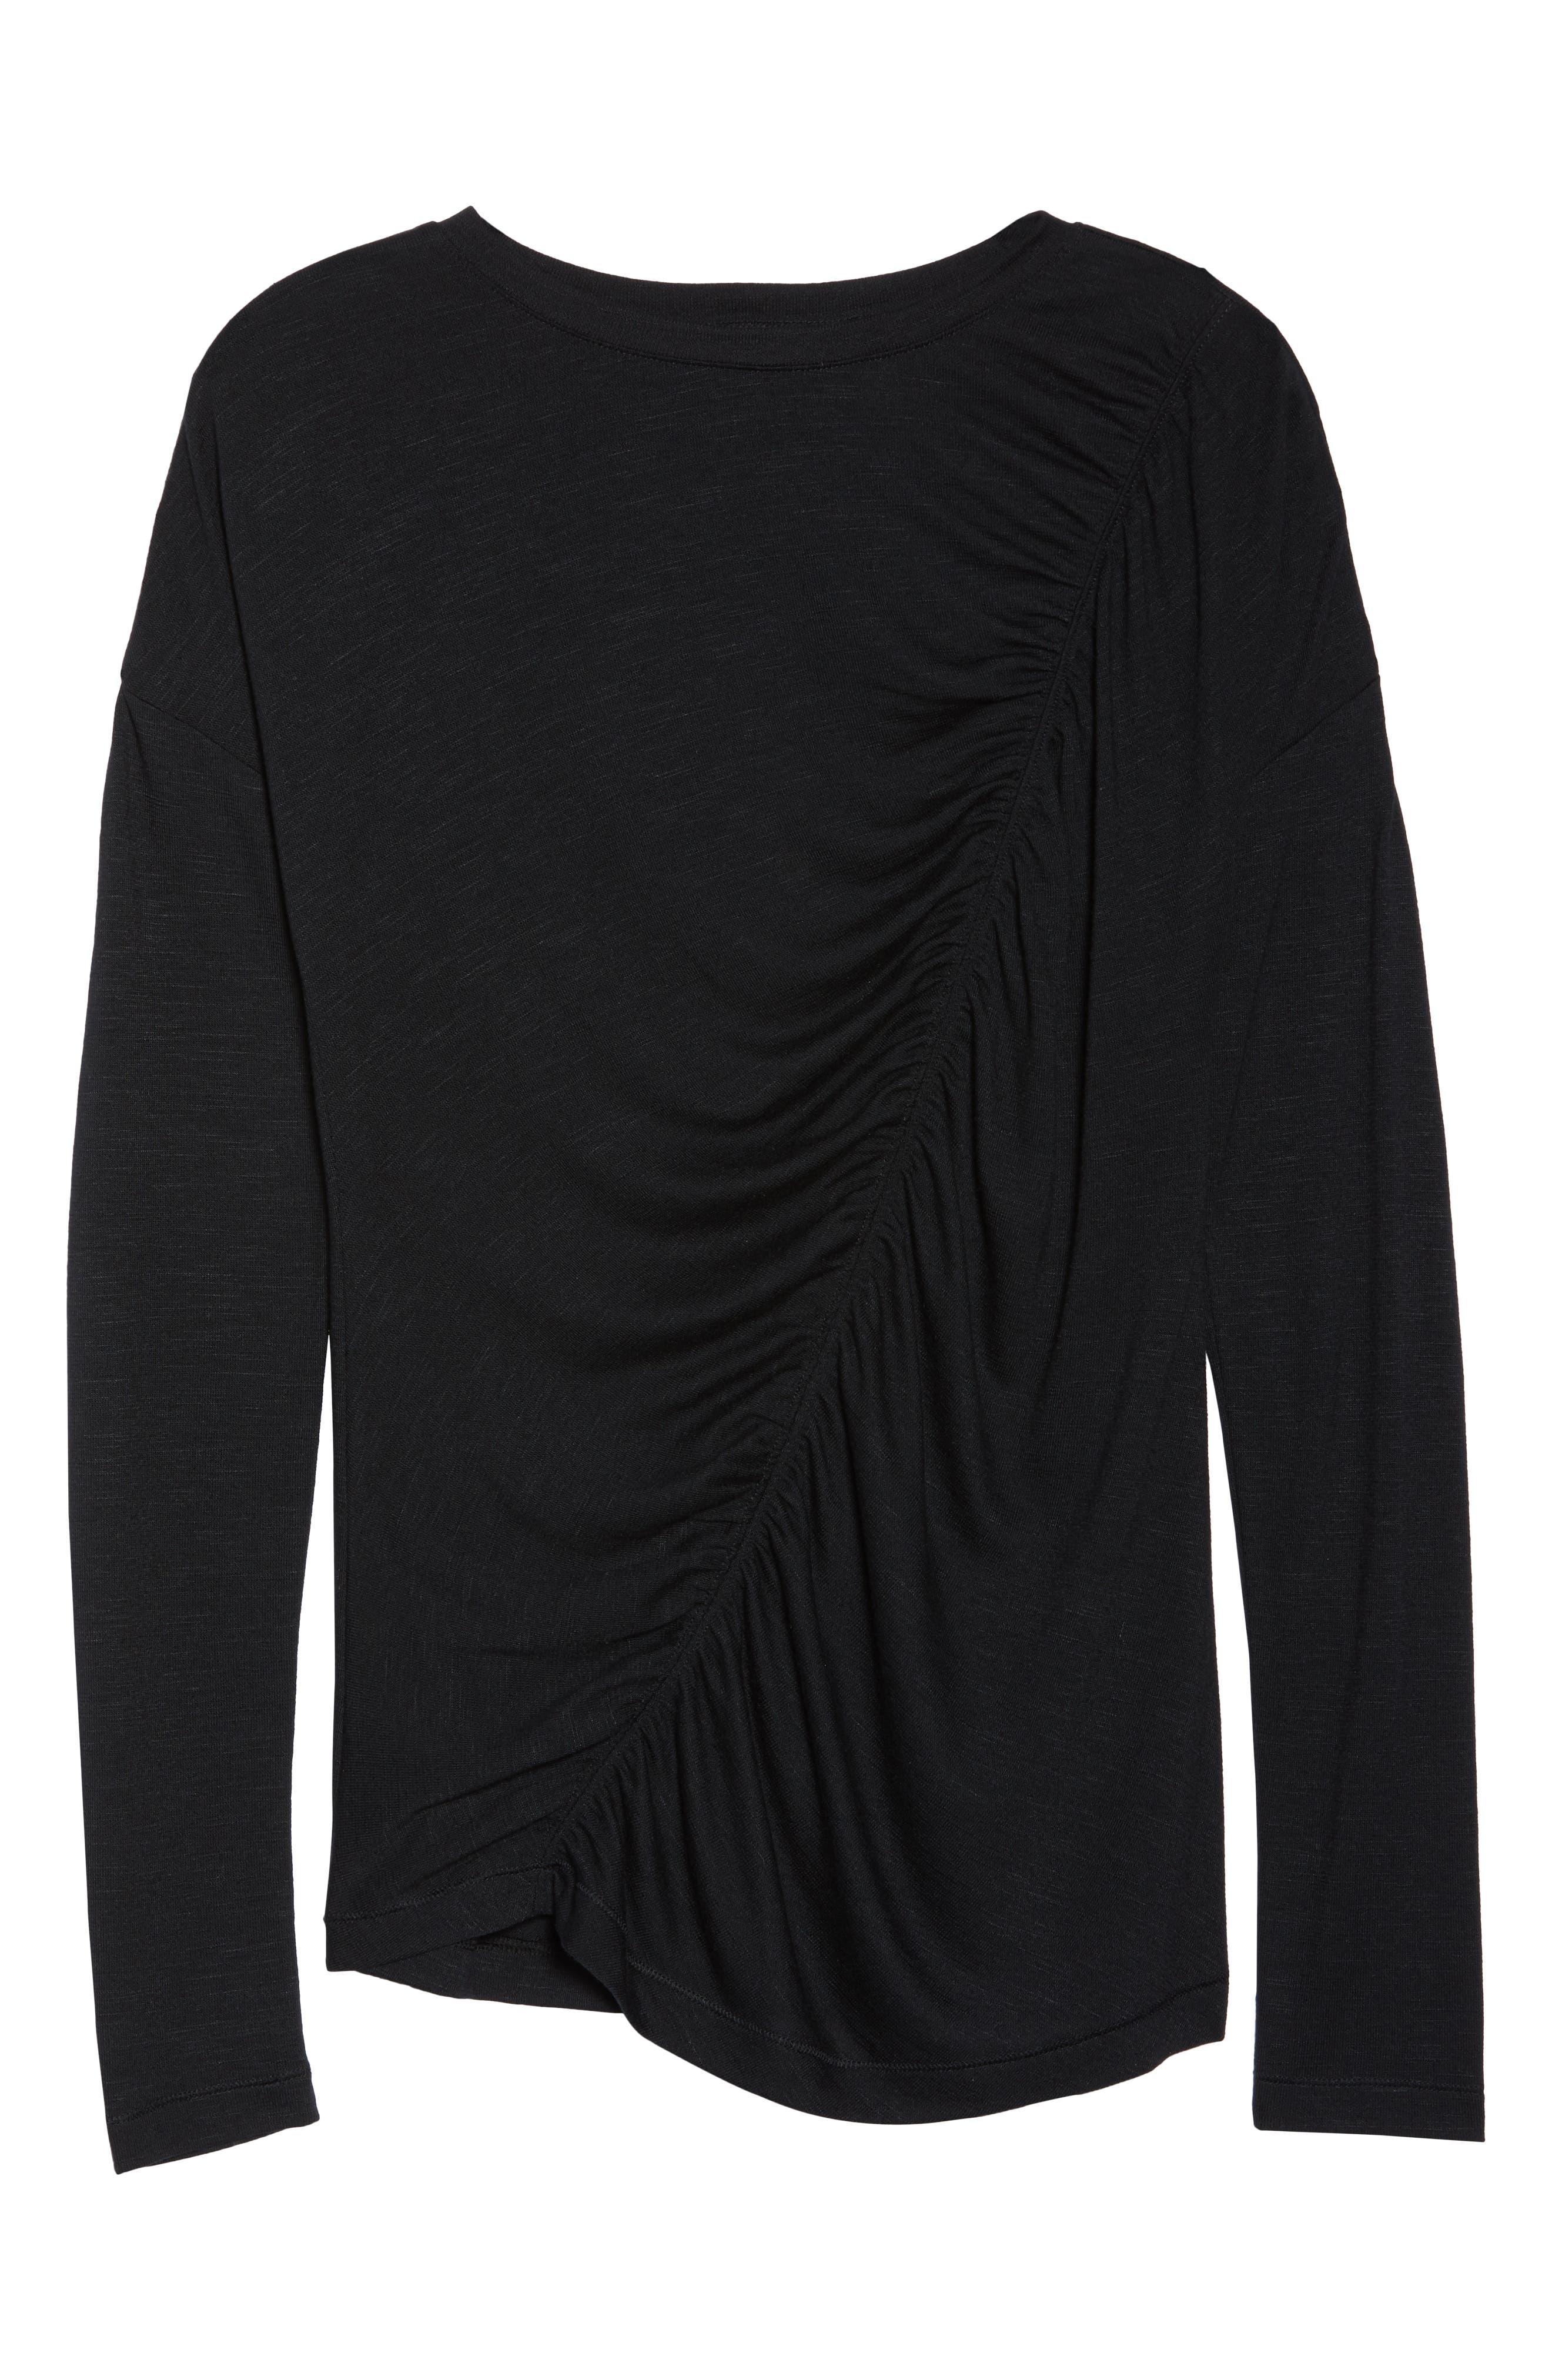 So Graceful Ruched Tee,                             Alternate thumbnail 7, color,                             001